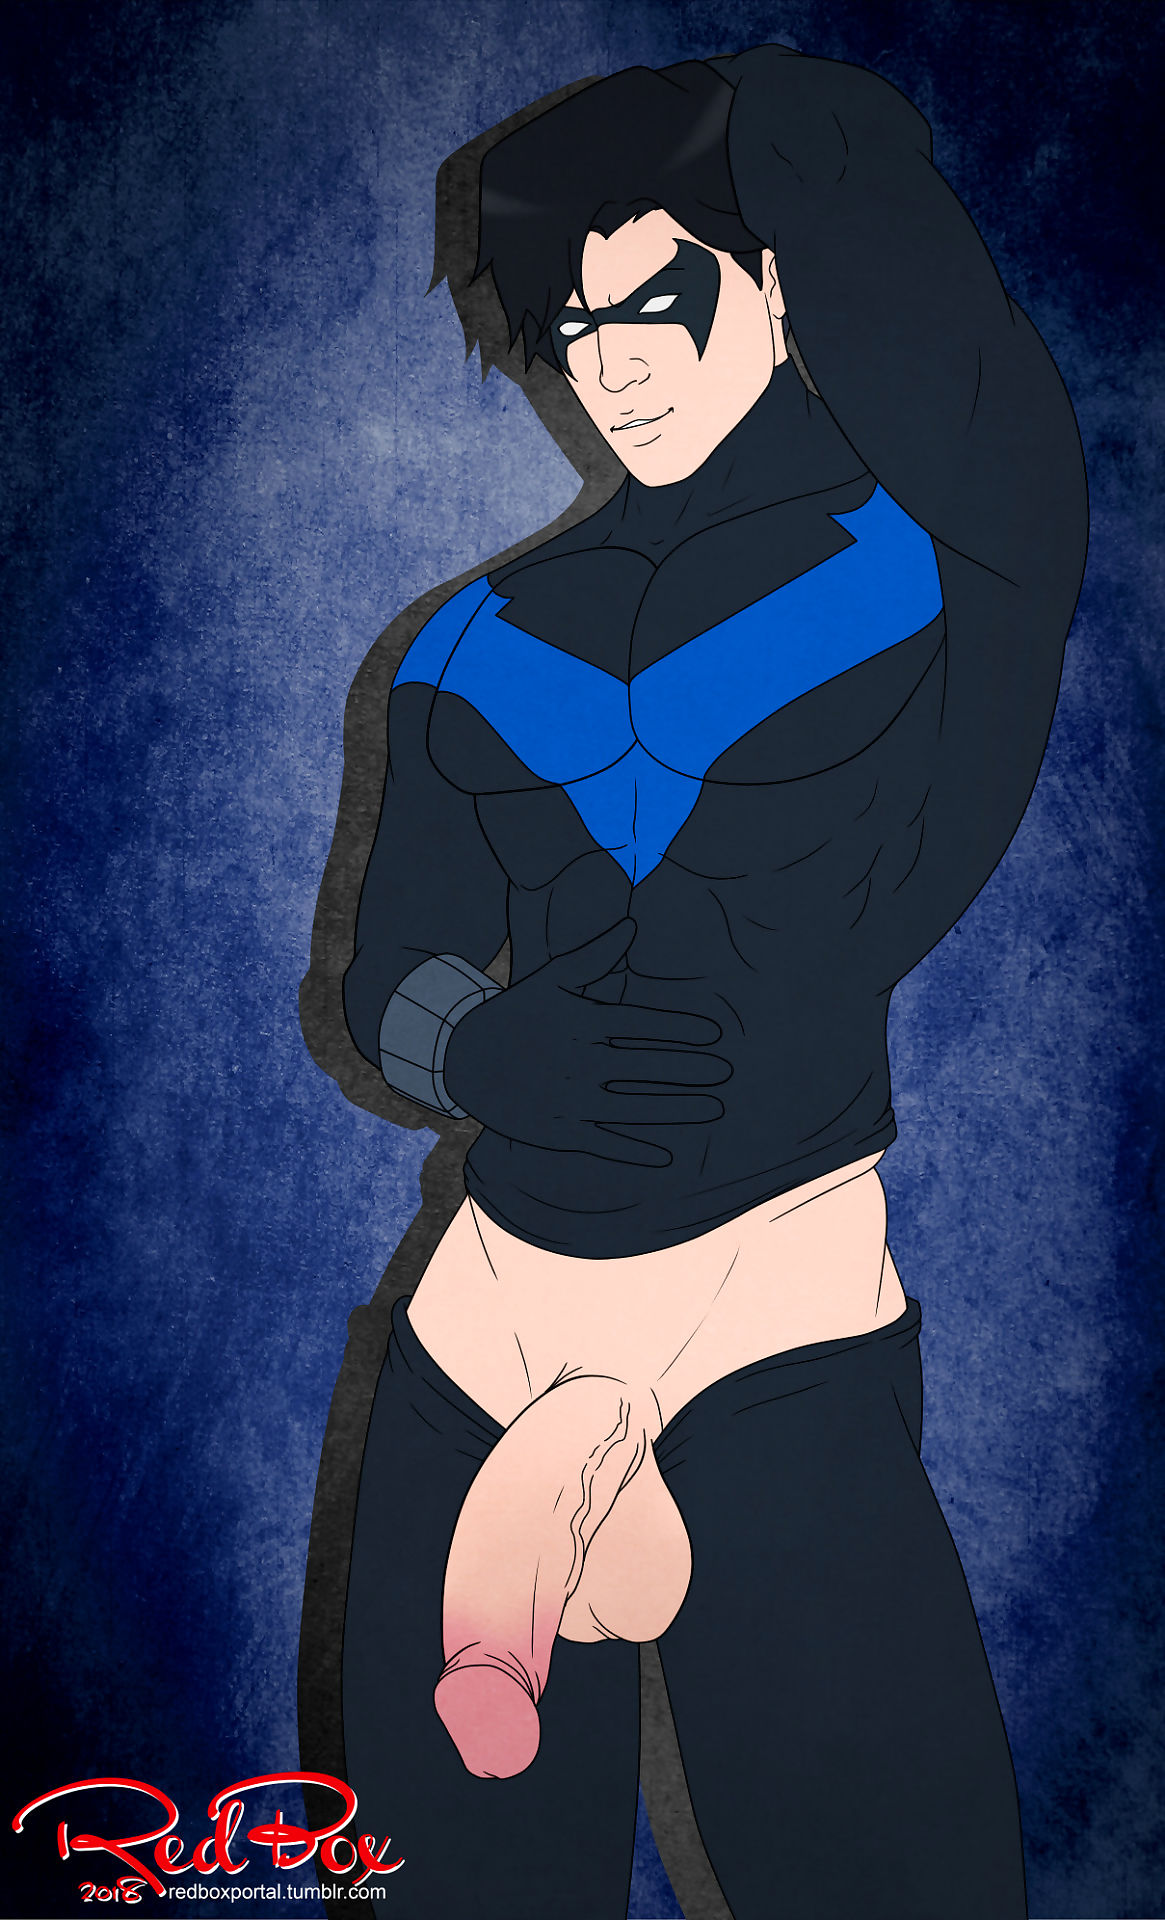 Nightwing/Dick Grayson - accouterment 4